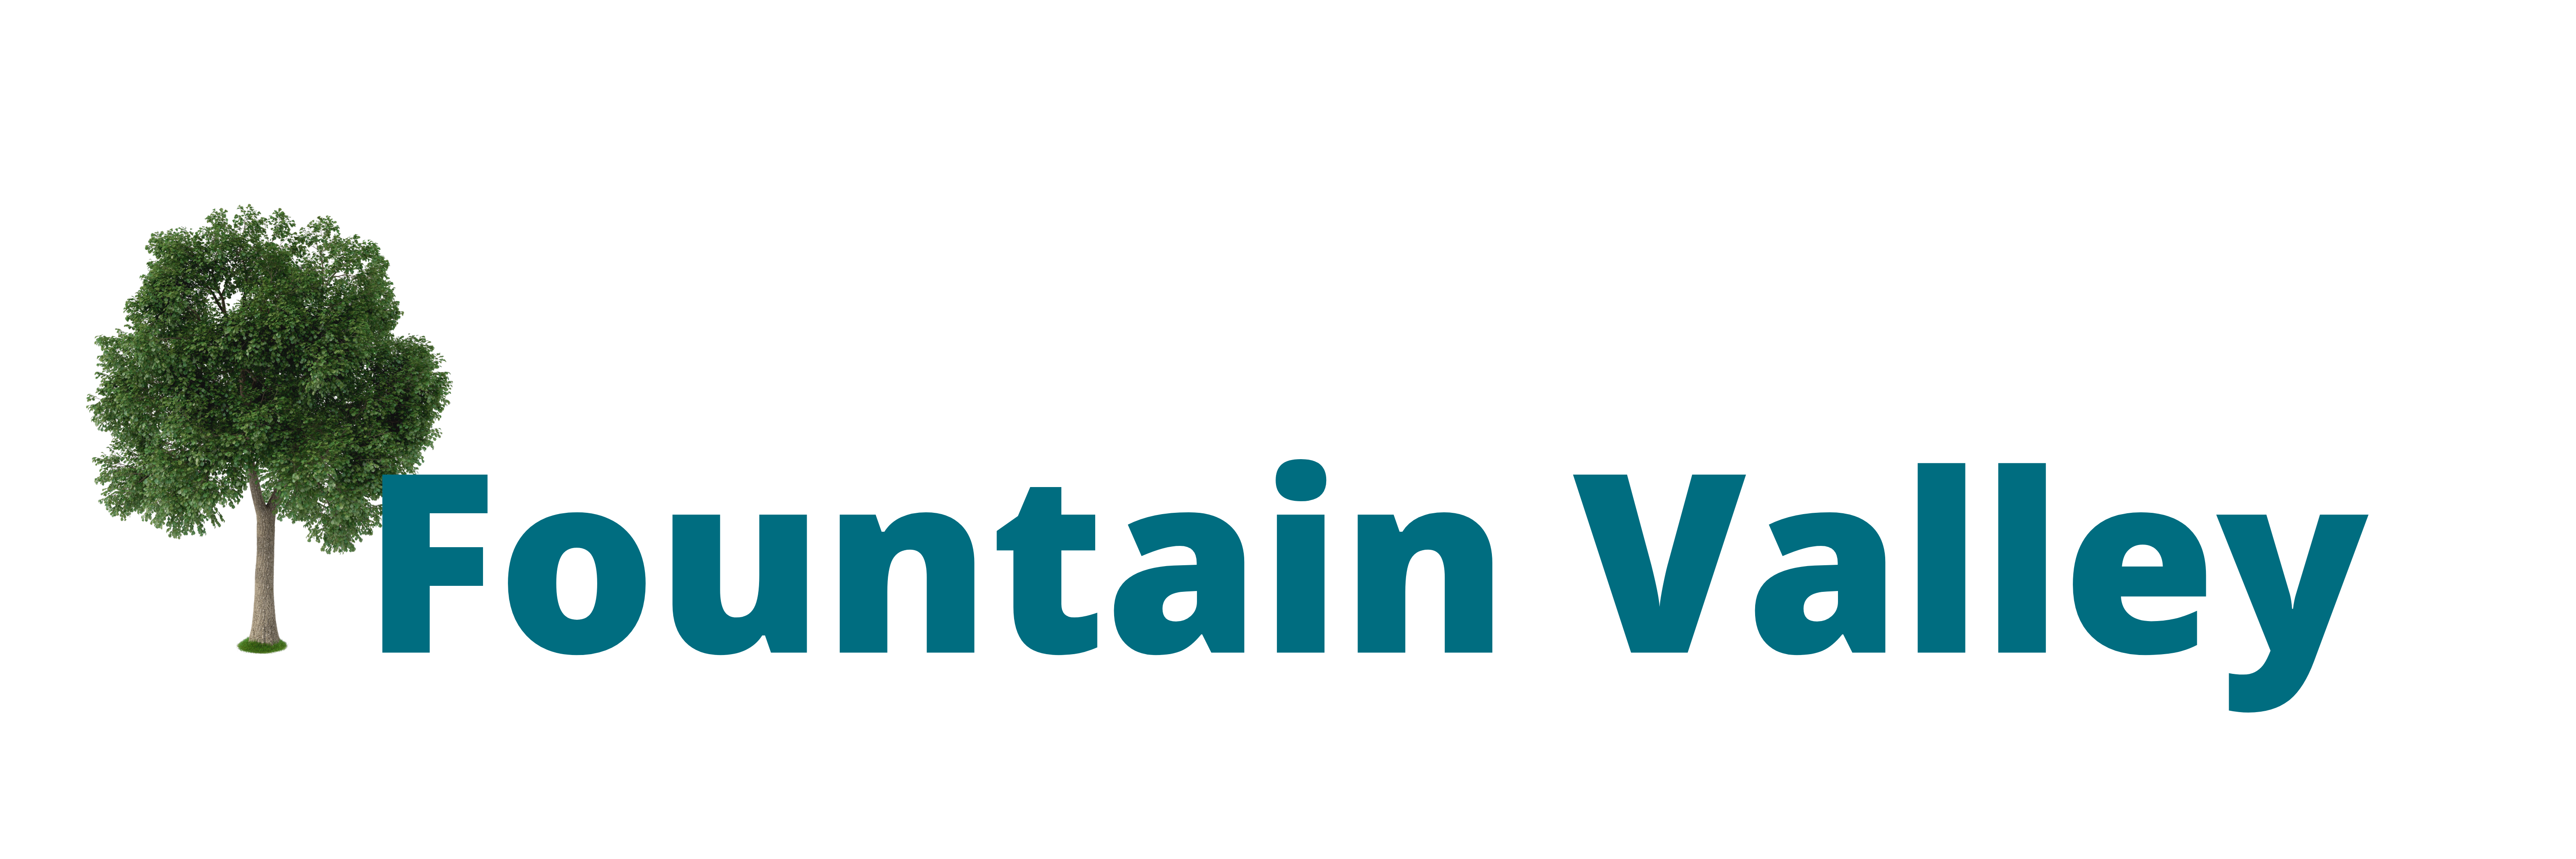 this image shows the logo of fountain valley tree care